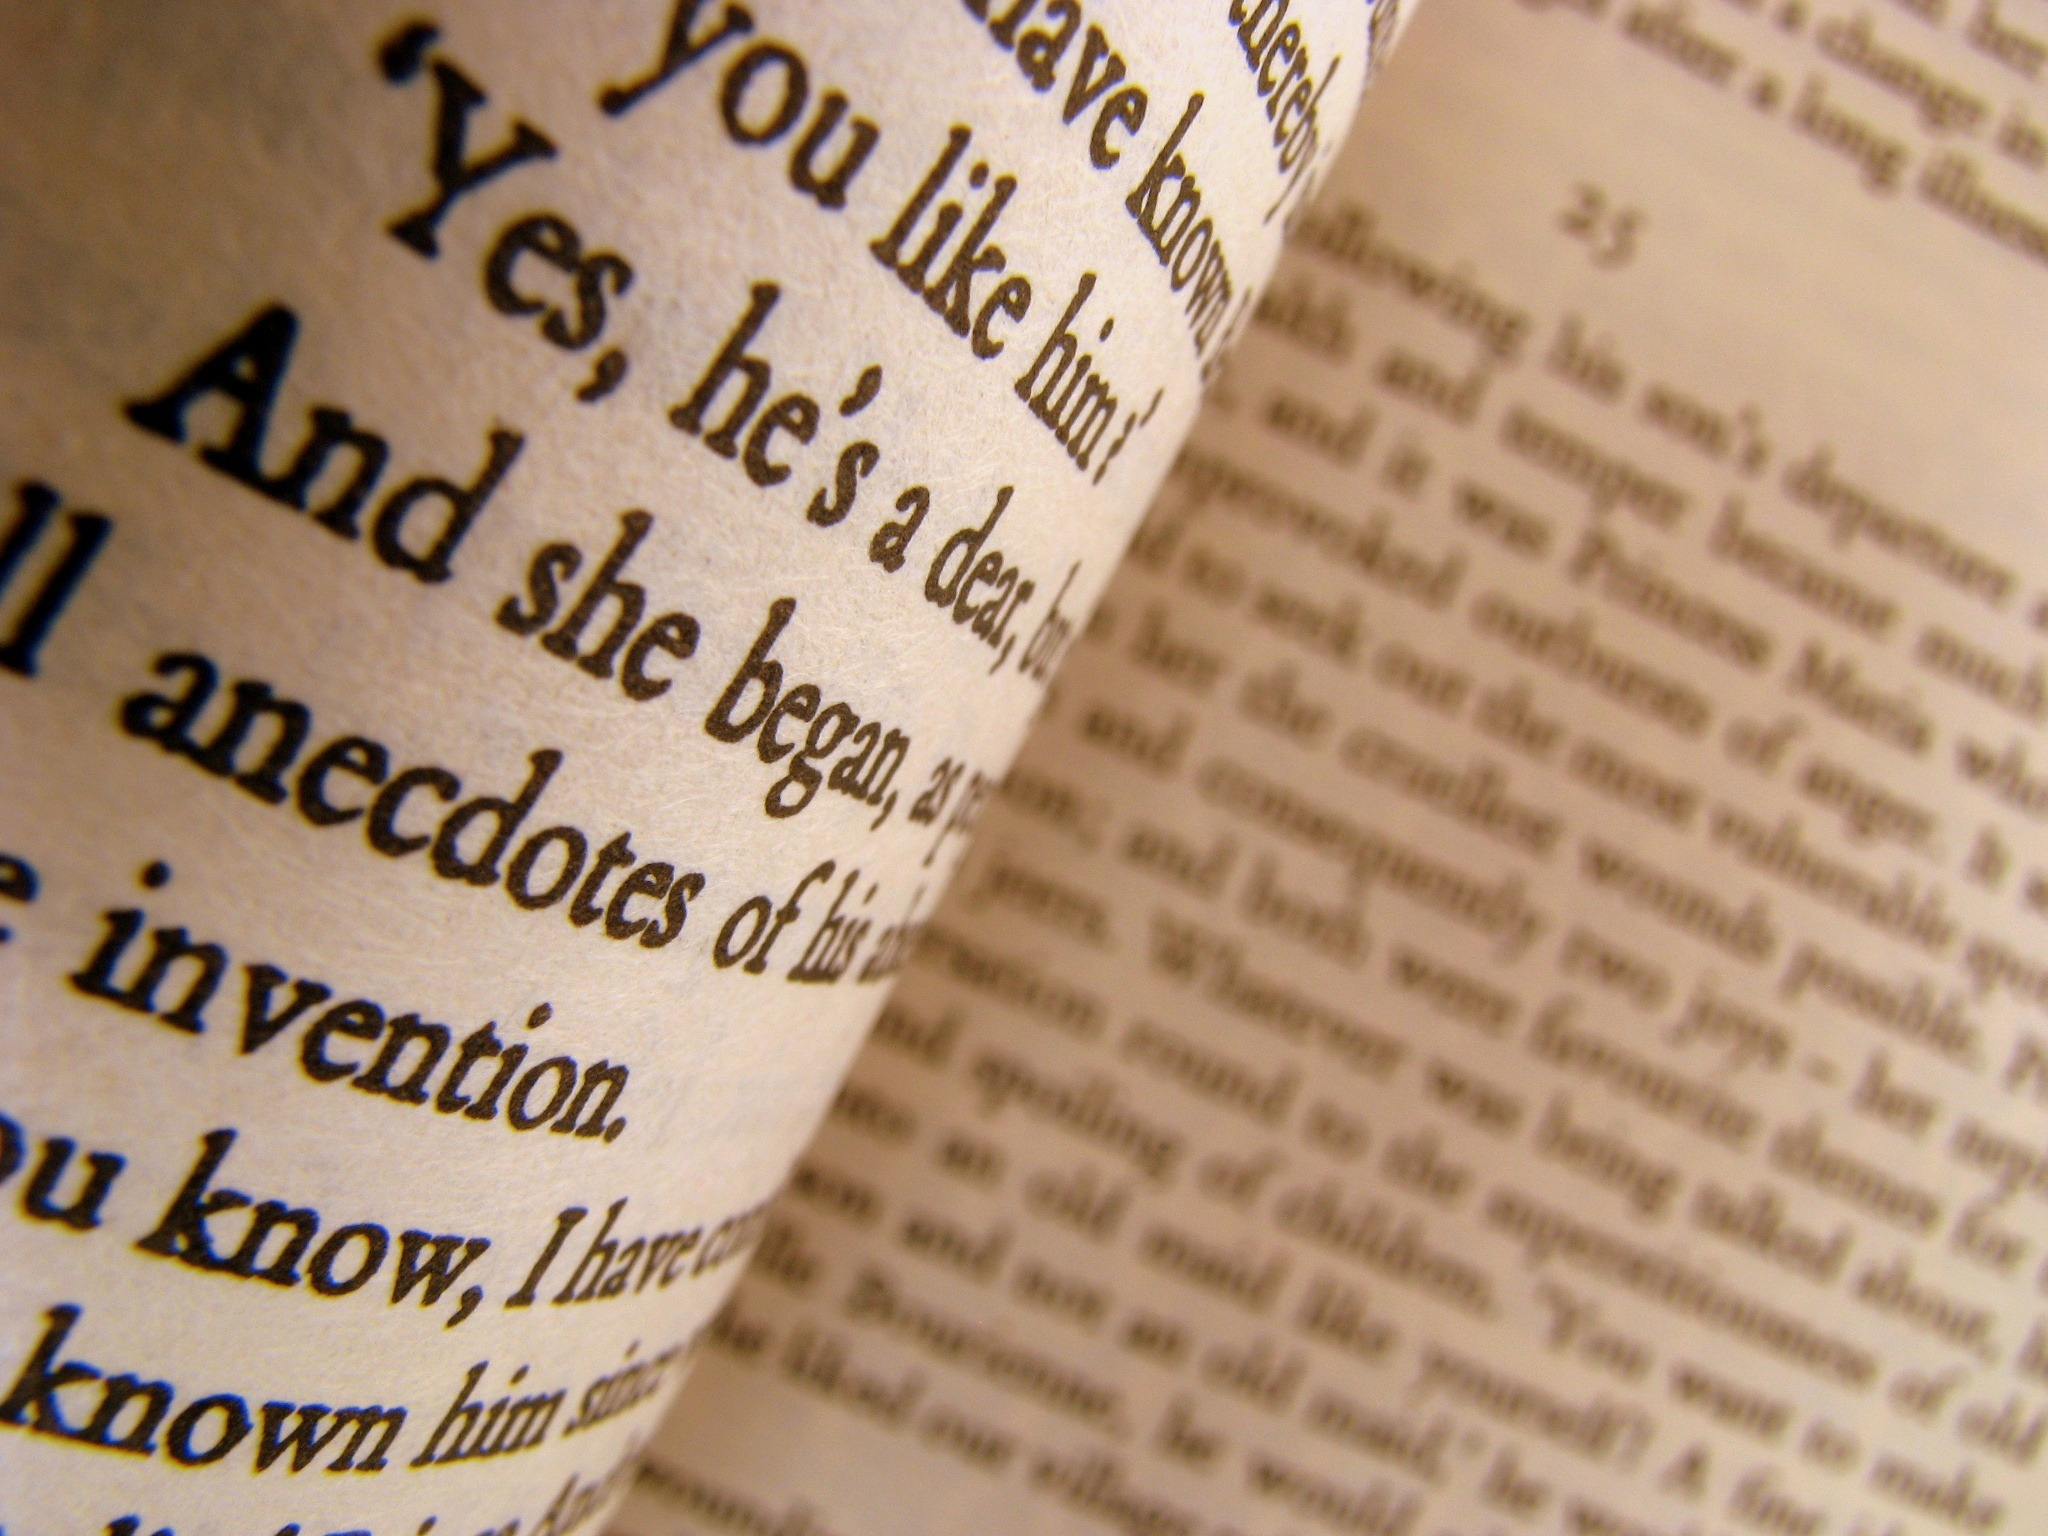 A Close-up of Some Pages of a Classic Novel